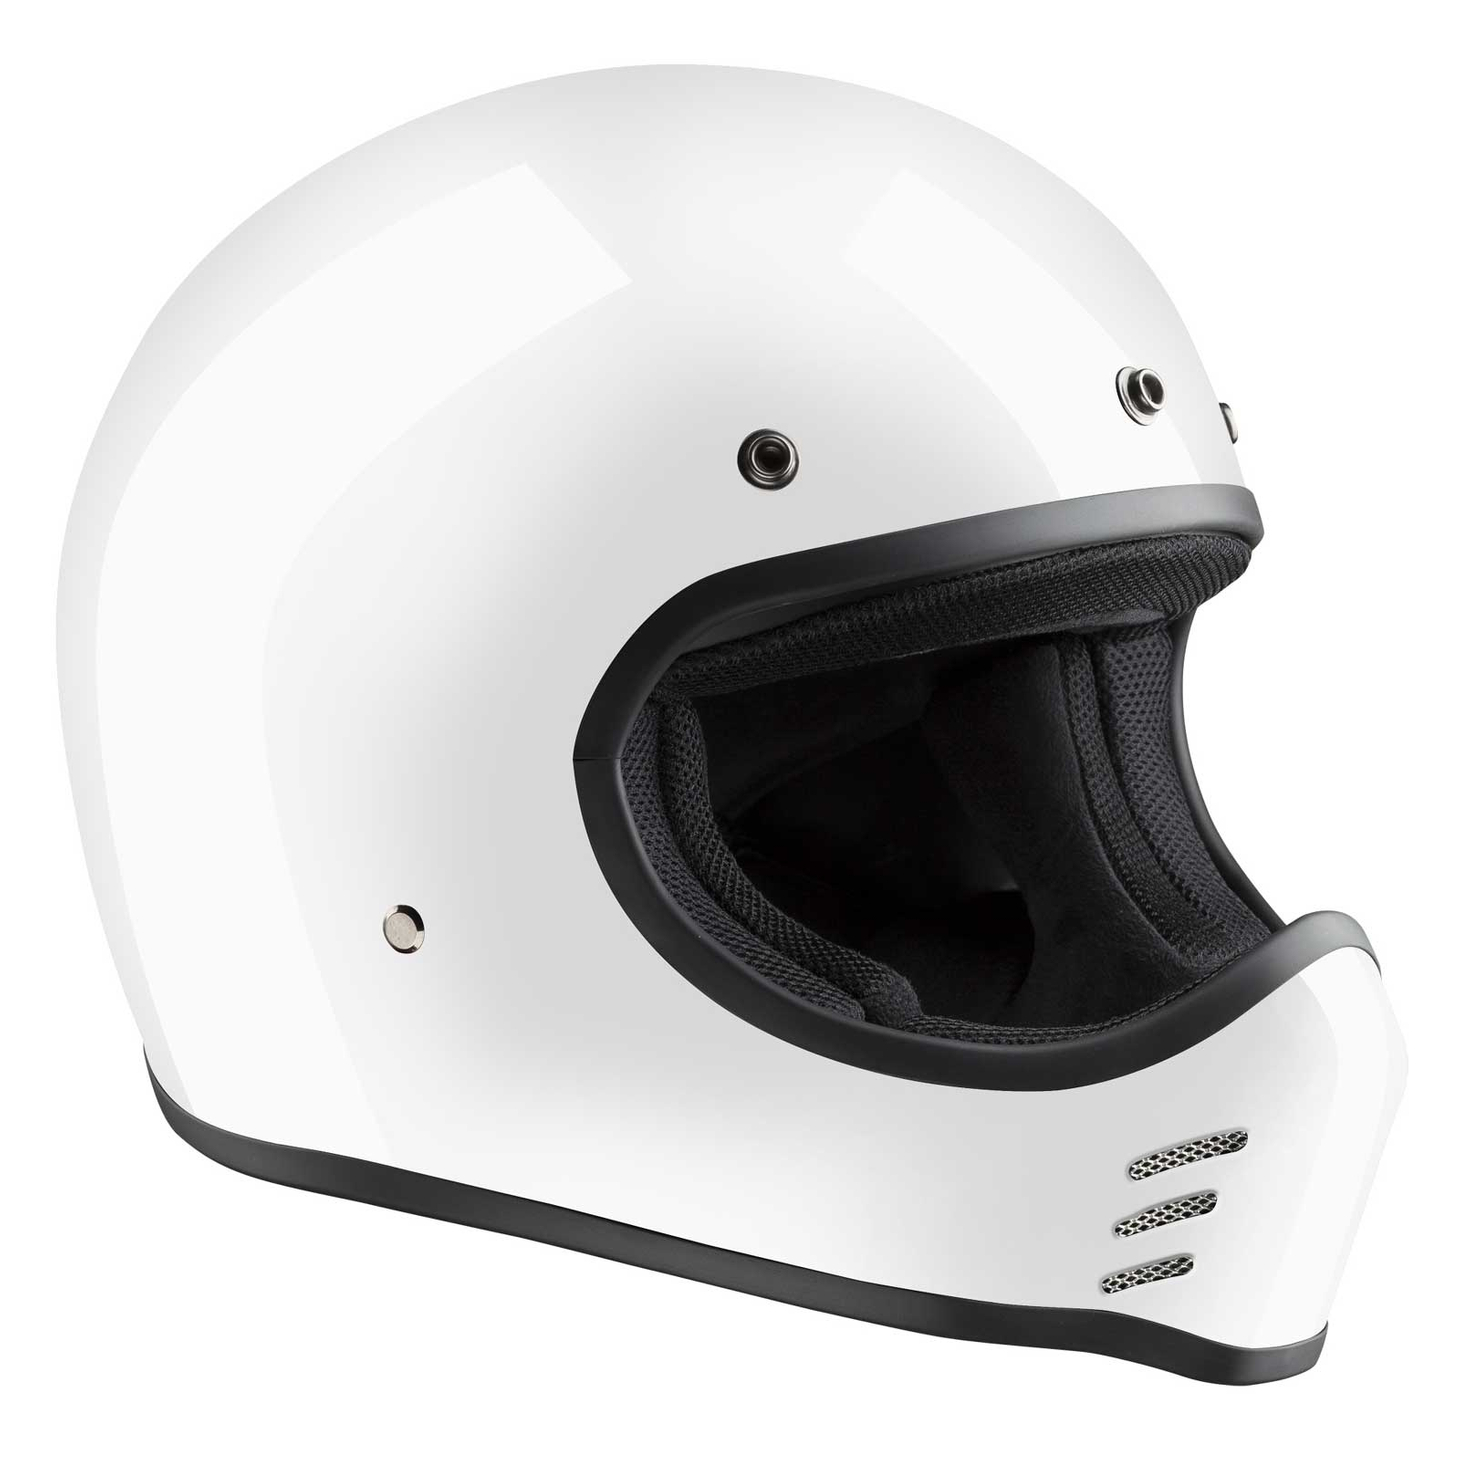 Bandit ECE 22-05 HMX Historic Moto Cross Helmet – Picture 2